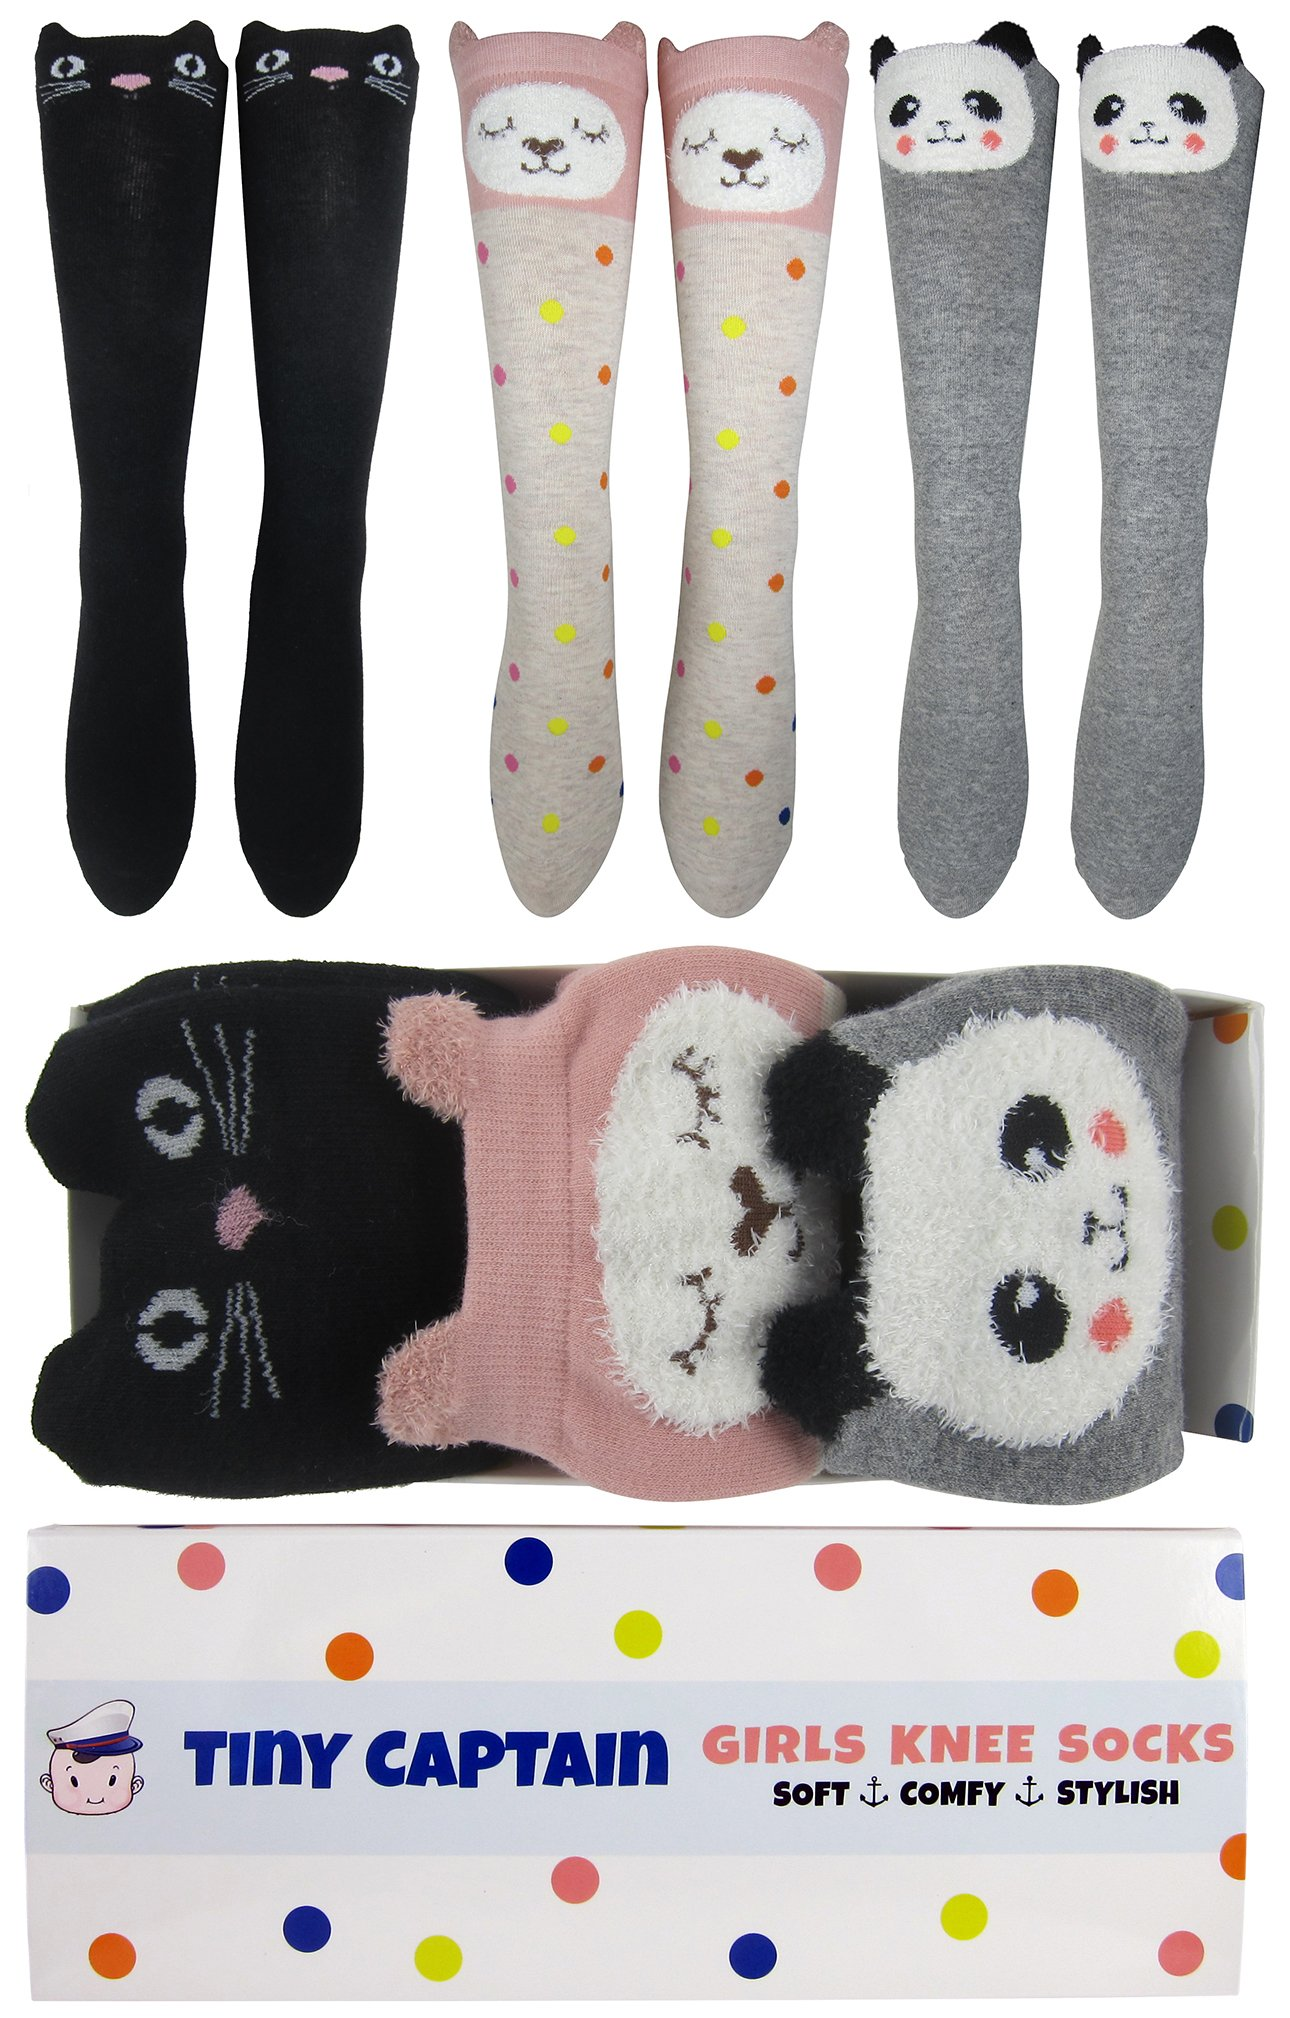 Tiny Captain Girls Knee High Long Socks Gift Over Calf Cartoon Animal Sock For Girl Ages 4-10 Yr Old One Size (Pink, Grey, Black, Medium)